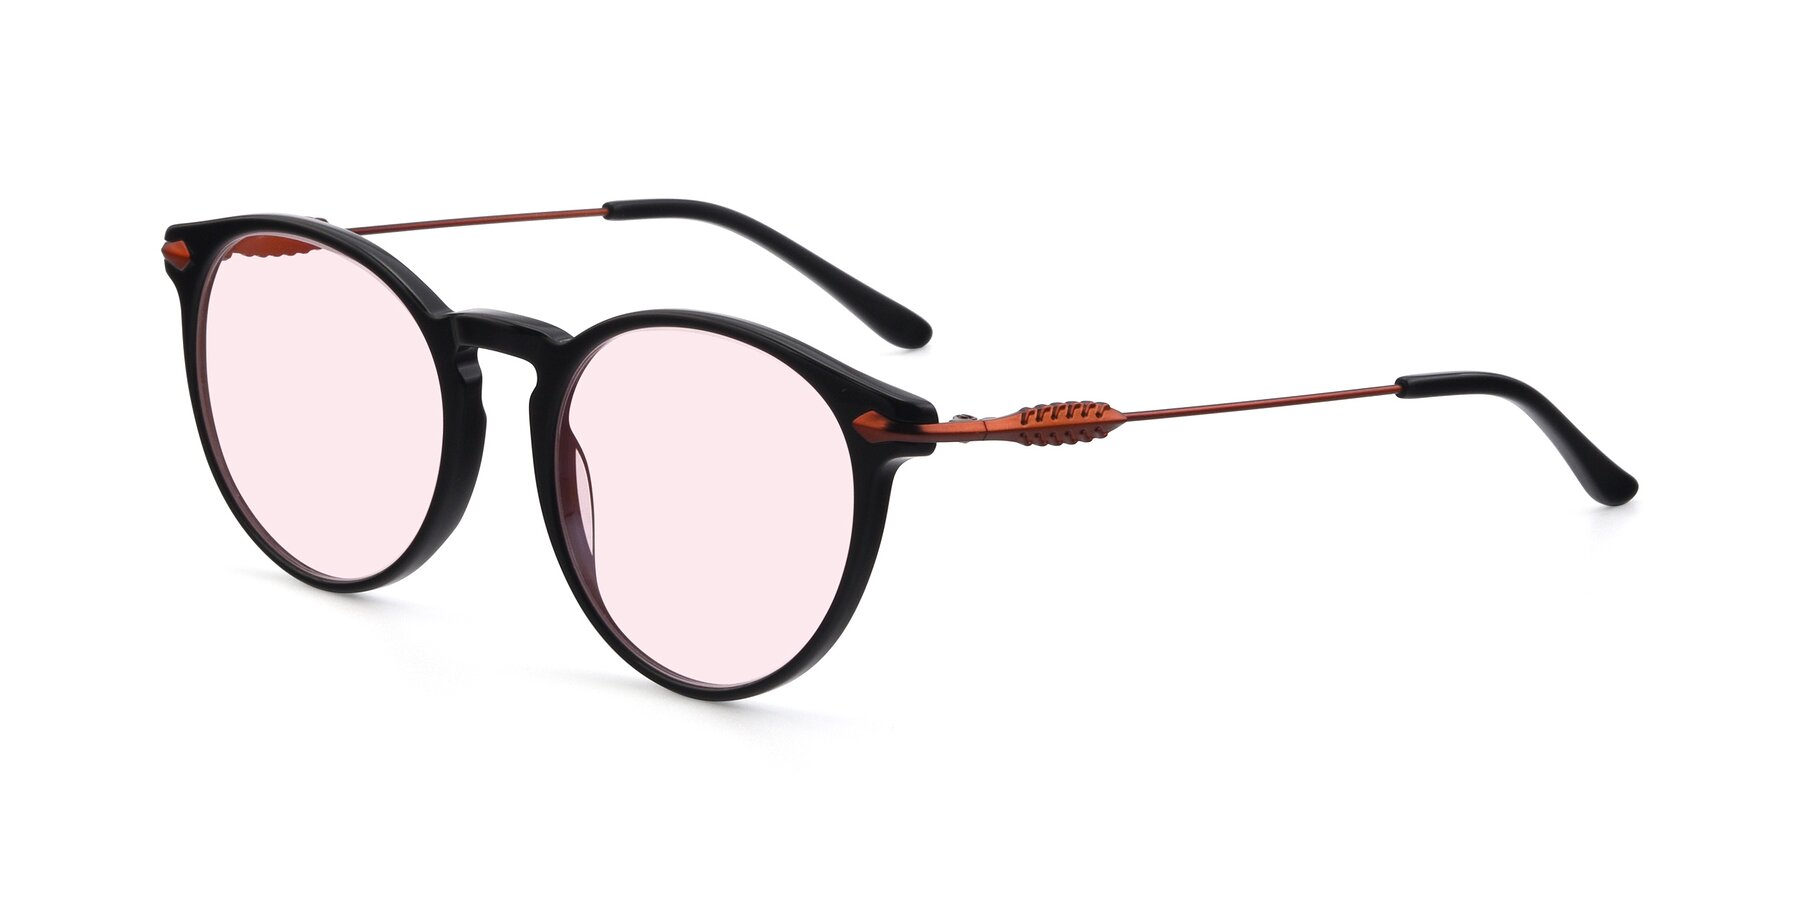 Angle of 17660 in Black with Light Pink Tinted Lenses